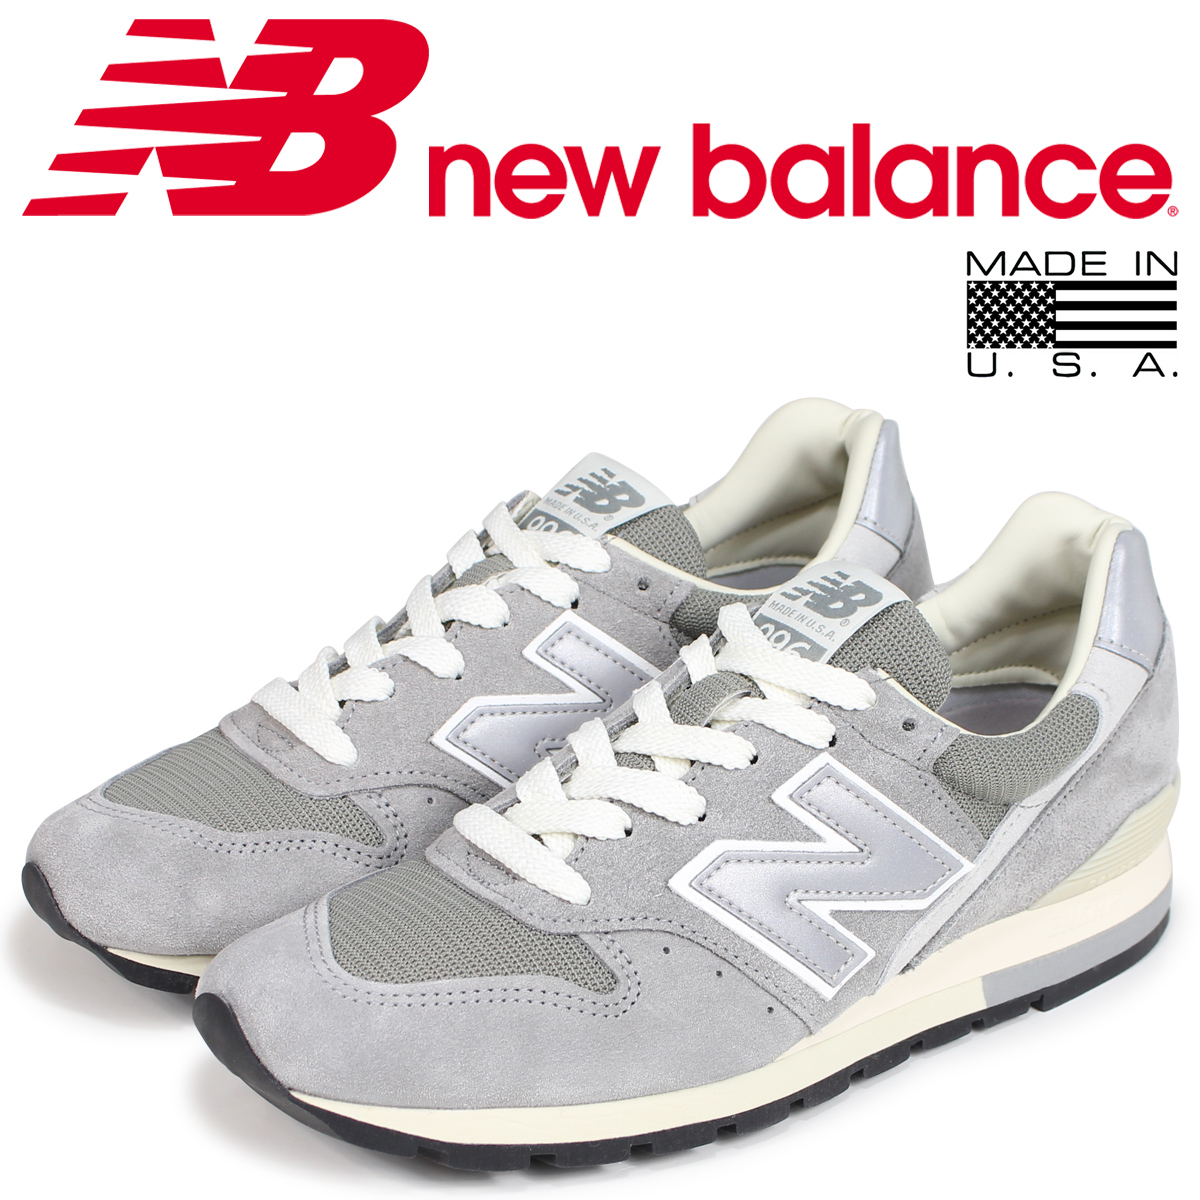 Sugar Global Online Shop | Rakuten Global Sugar Market: new balance 996 men's New Balance sneakers ML996DK D Wise MADE IN USA gray [load planned Shinnyu load in reservation product 7/26 containing] 3fb20c